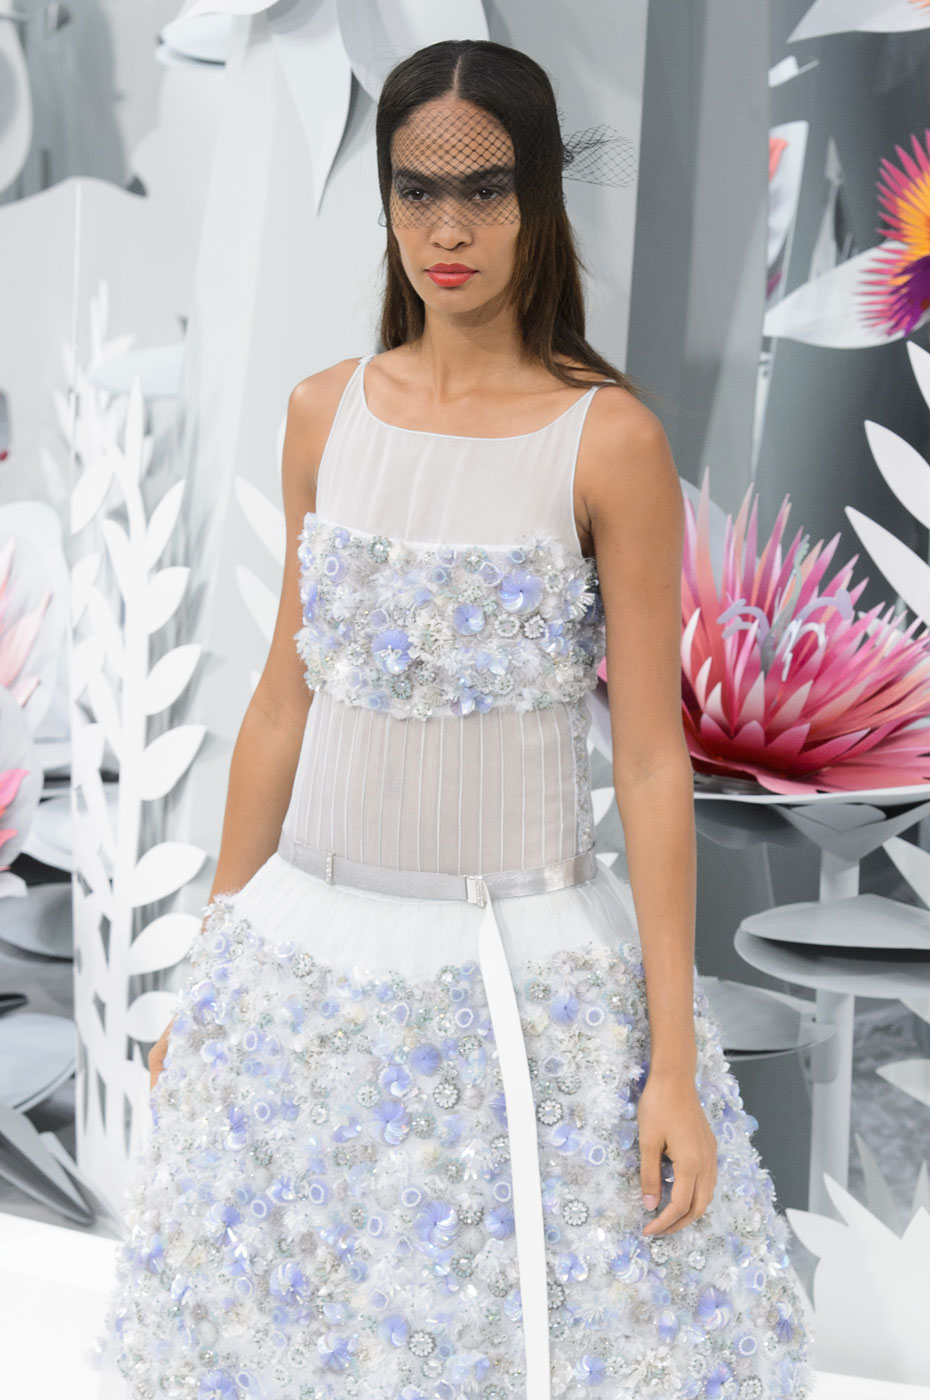 Chanel-fashion-runway-show-haute-couture-paris-spring-summer-2015-the-impression-134